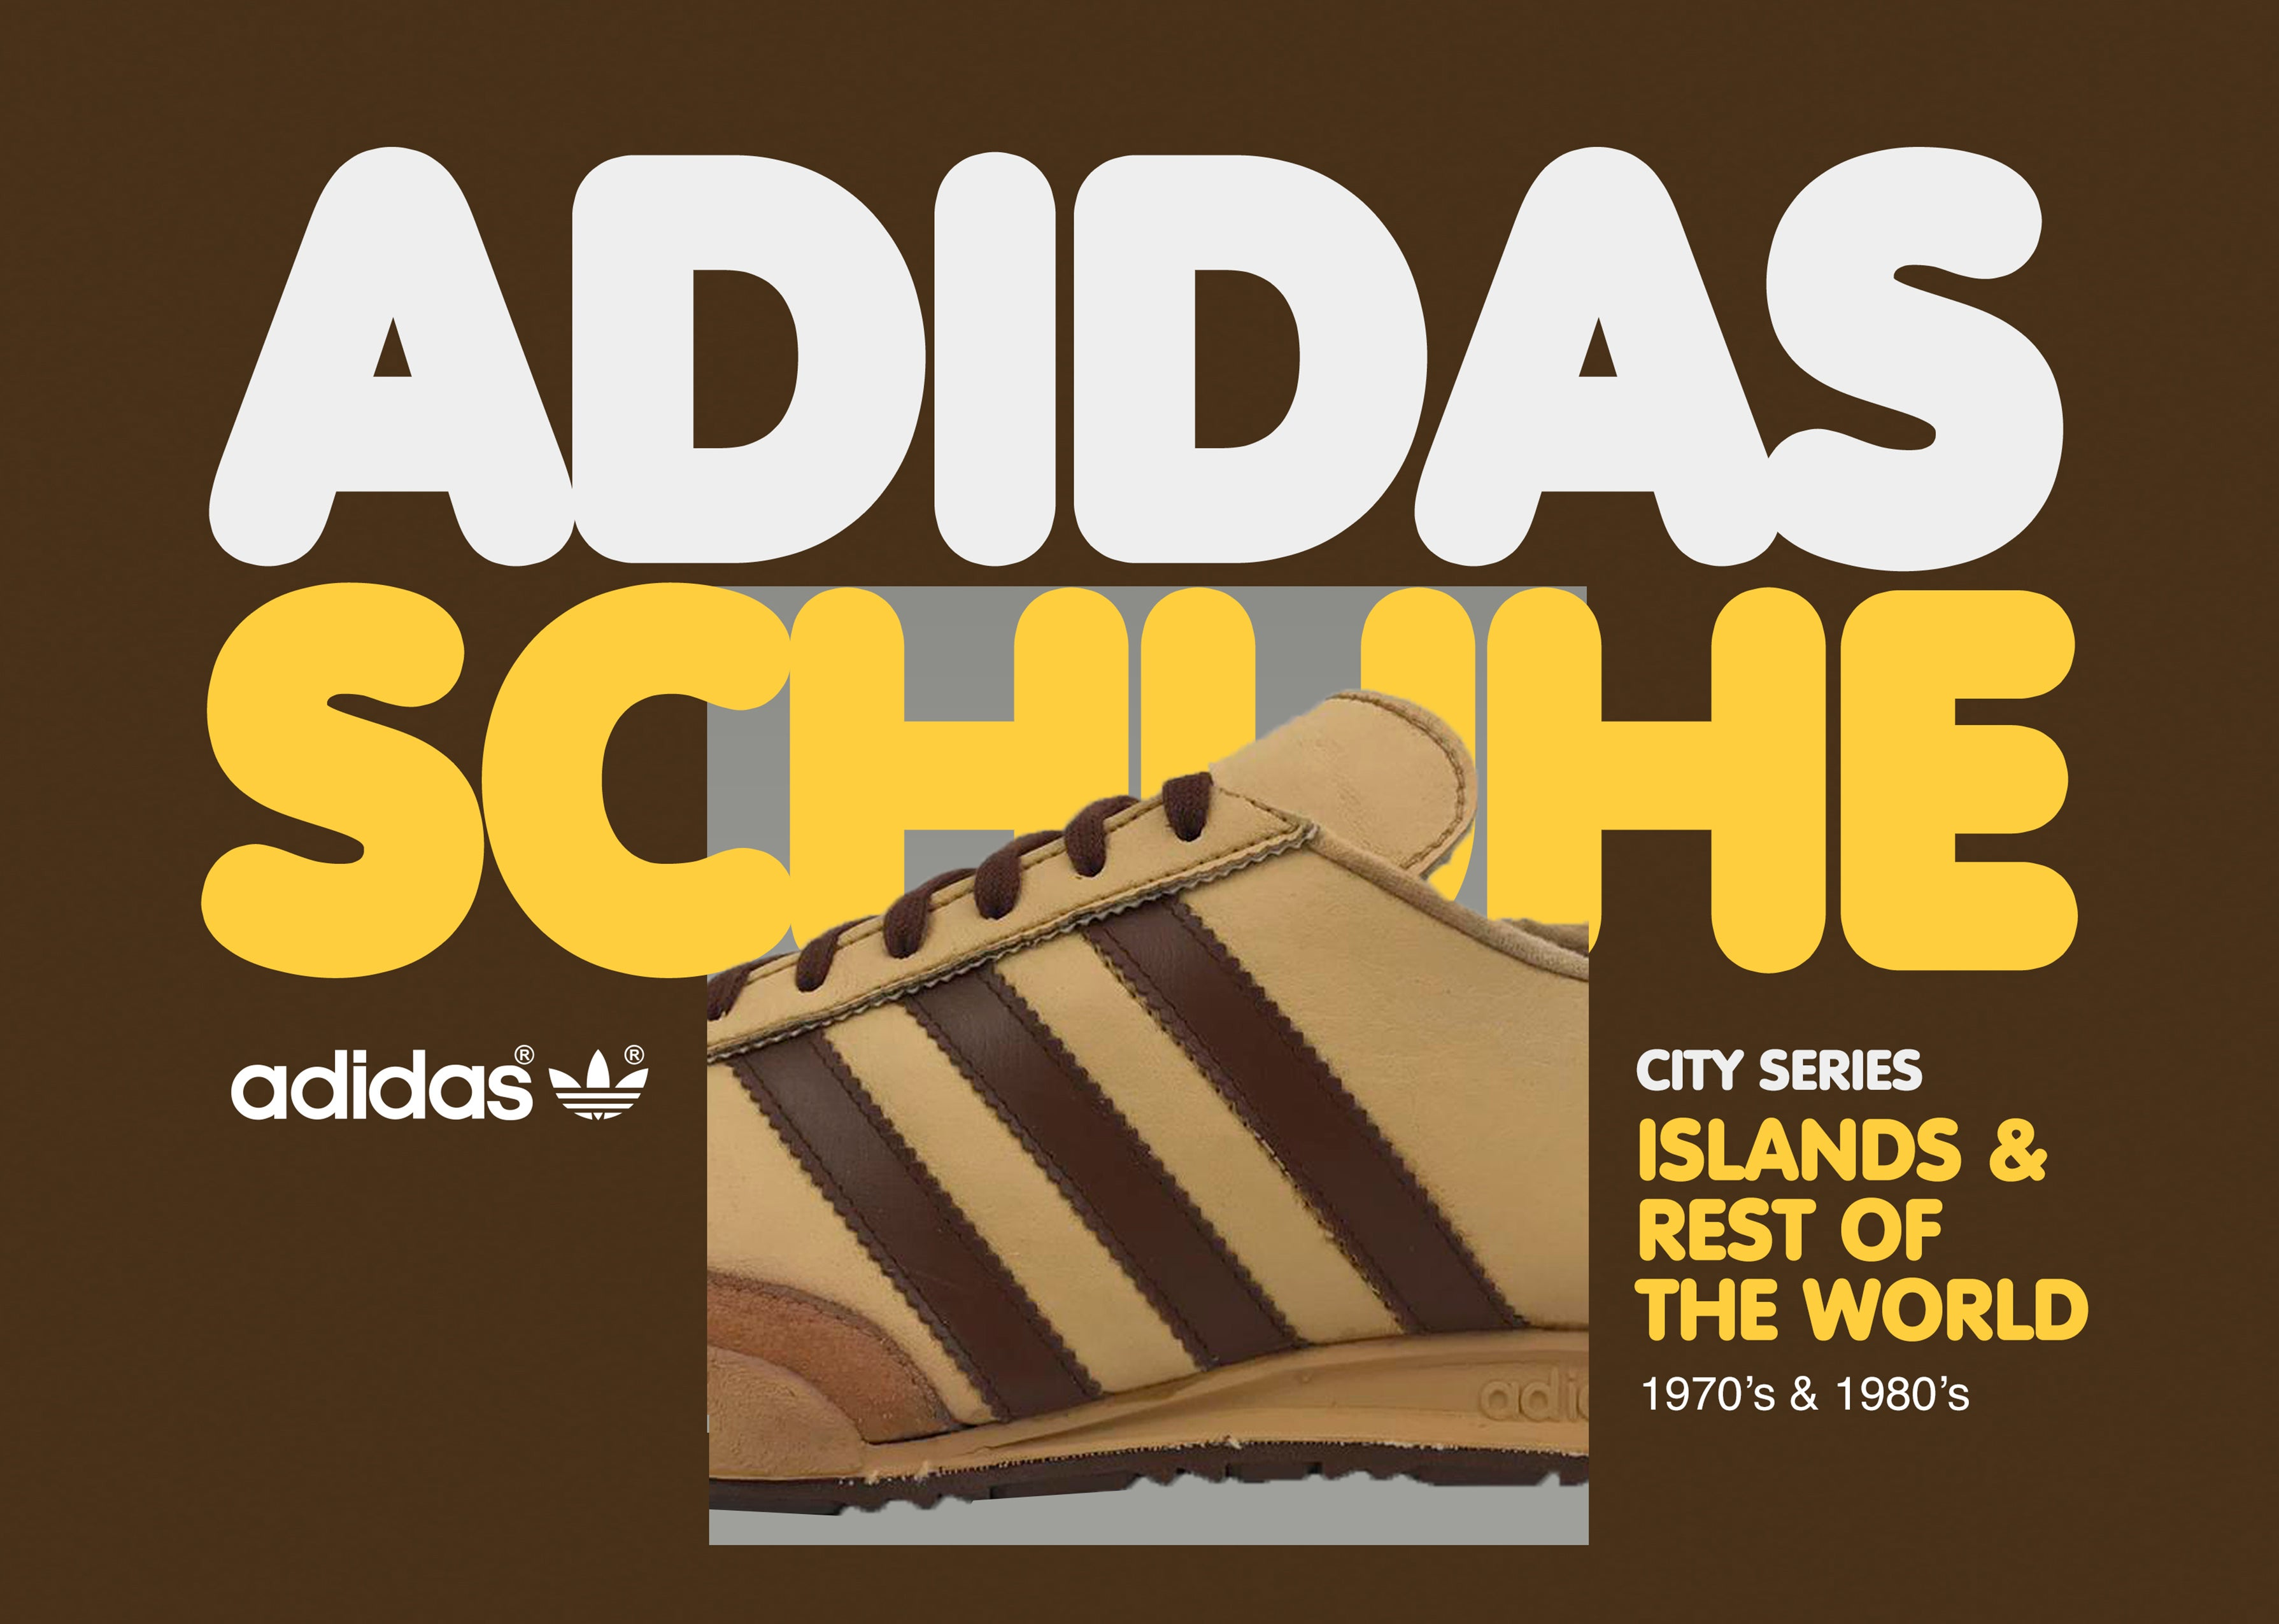 Vintage Adidas Schuhe Islands and Rest of the World Book